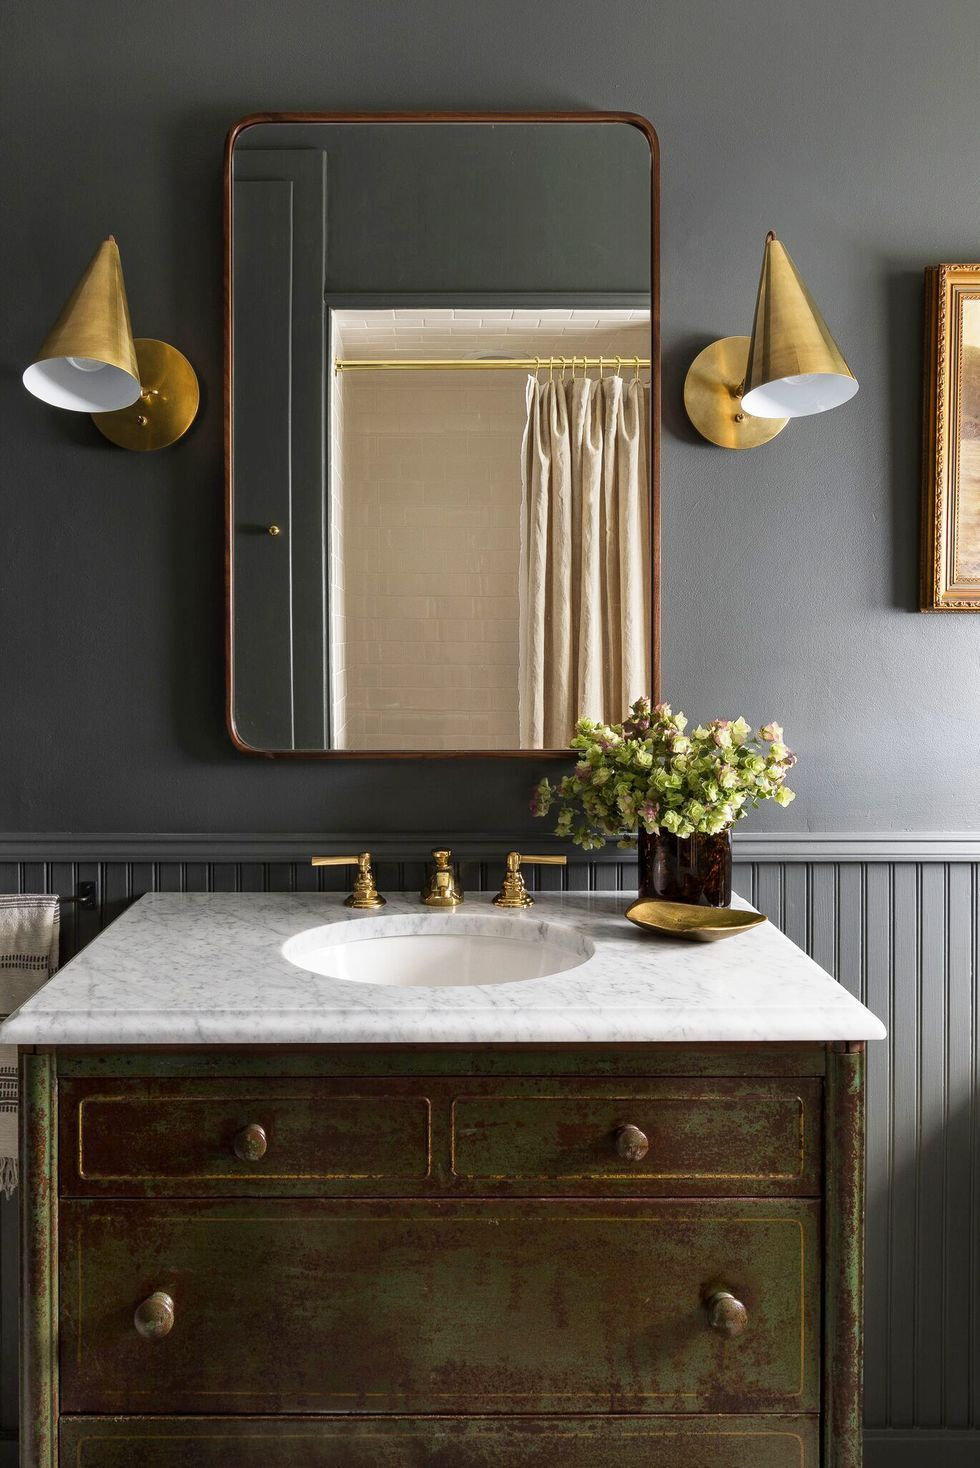 22 Bathroom Paint Color Ideas To Steal For A Quick Upgrade Guest Bathroom Small Small Dark Bathroom Bathroom Colors